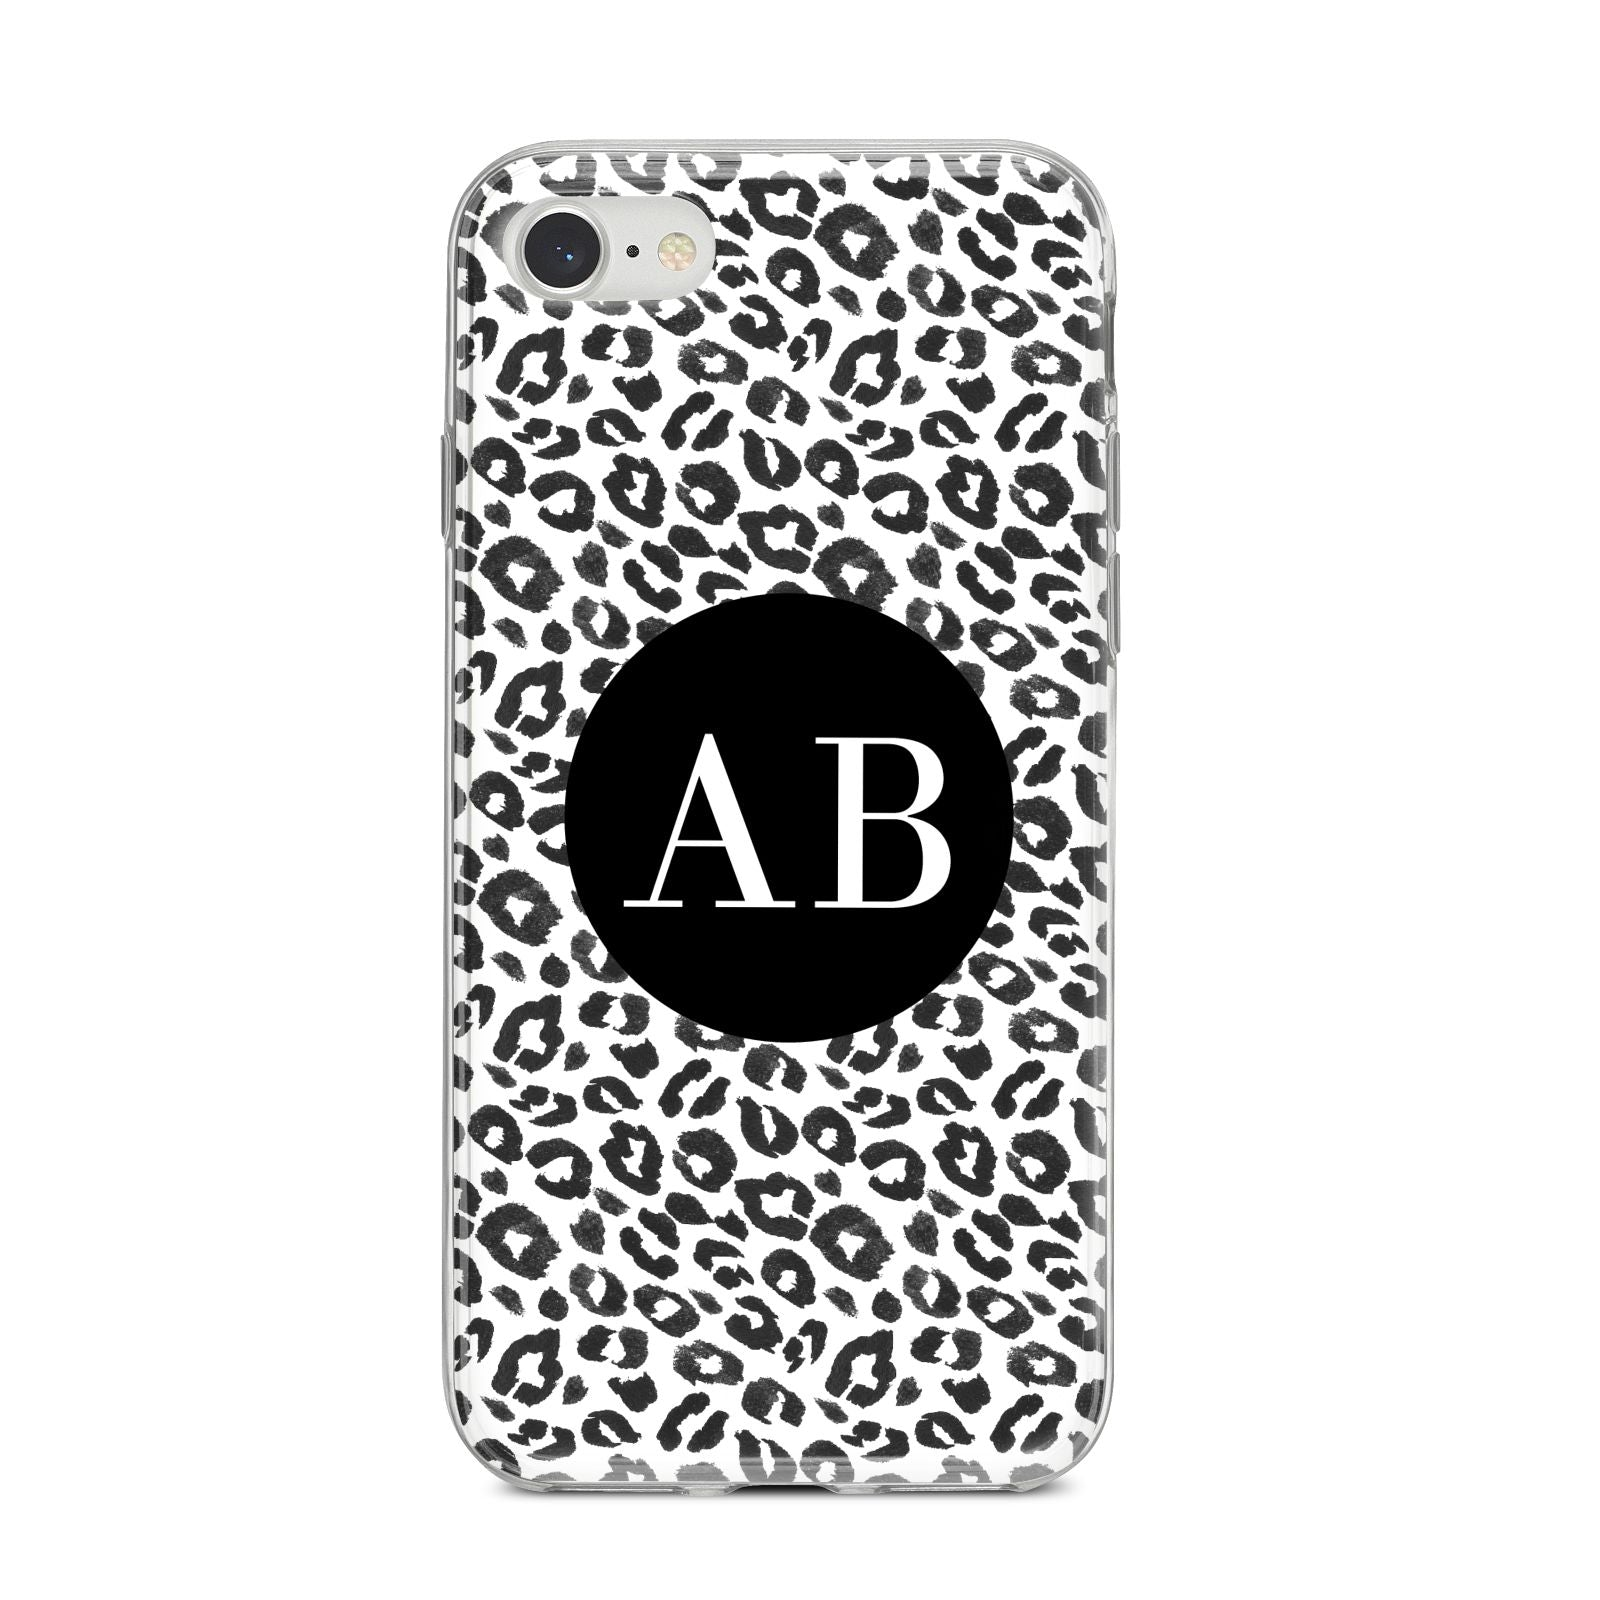 Leopard Print Black and White iPhone 8 Bumper Case on Silver iPhone